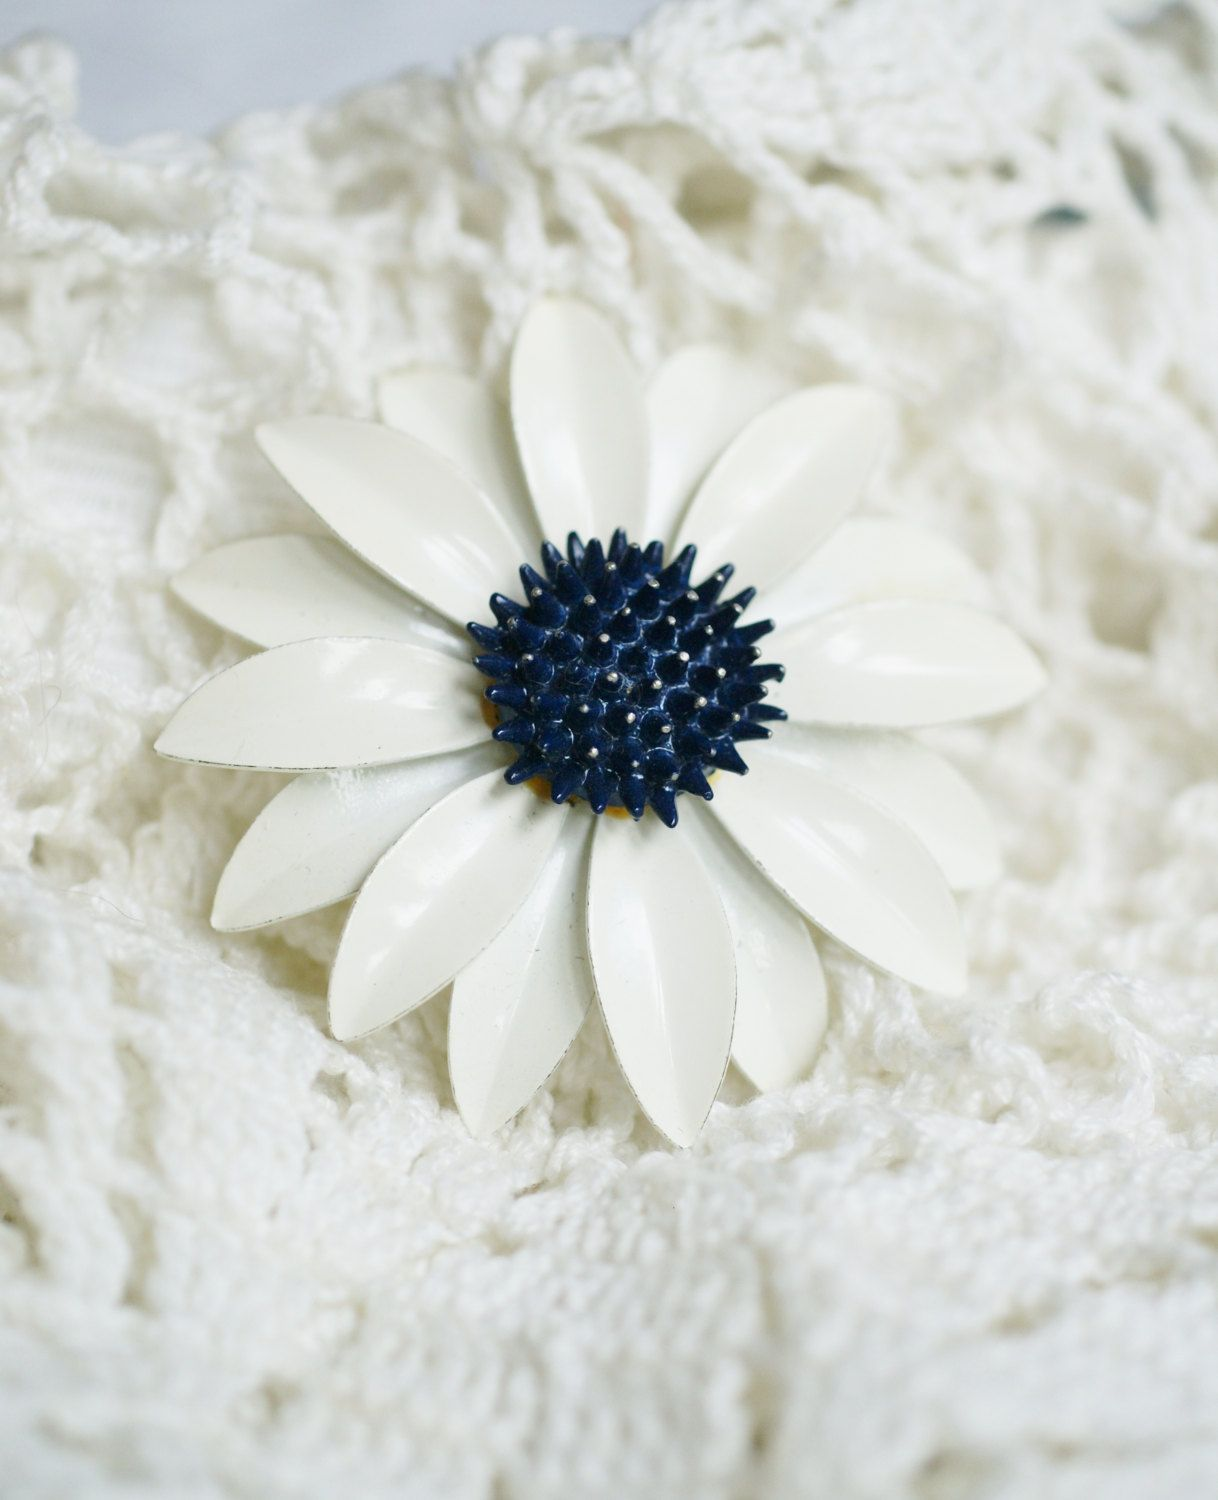 Large white enamel flower brooch vintage white daisy brooch blue large mid century vintage white enamel daisy flower with blue enamel center brooch pin special gift for her by puddinridgecreations on etsy izmirmasajfo